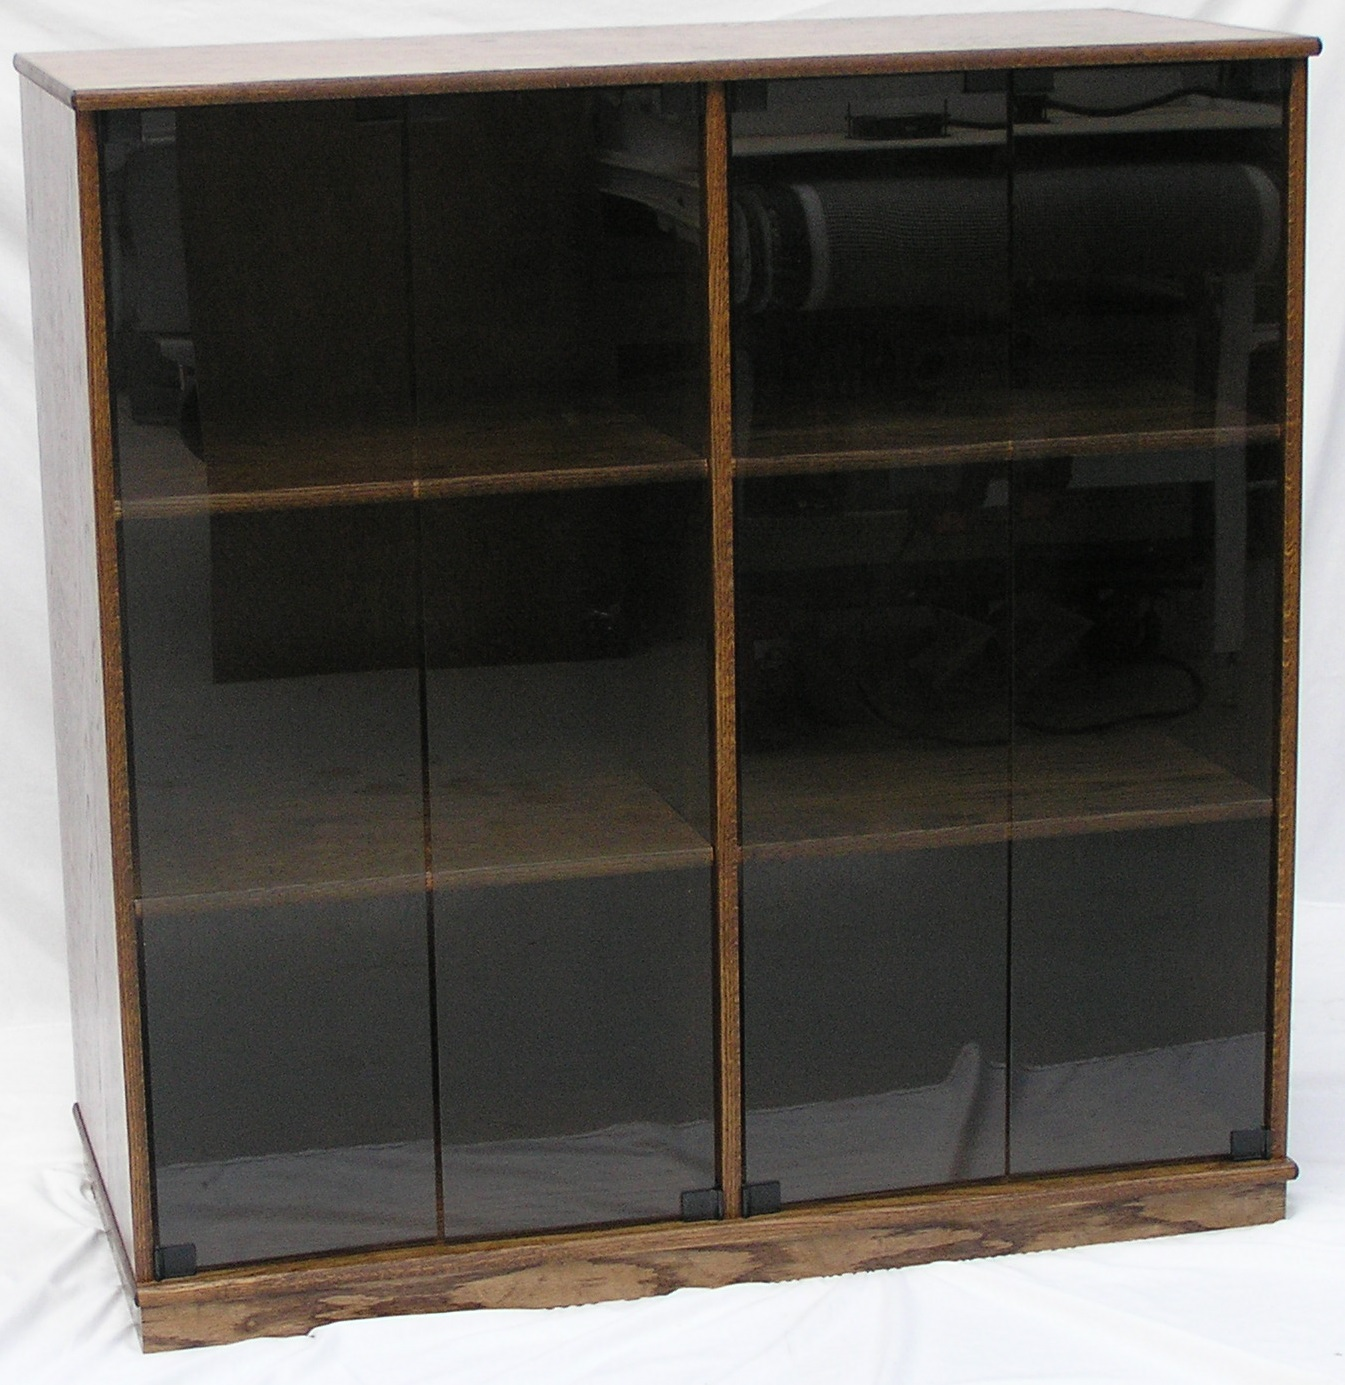 Entertainment center 45H x 22D in oak with glass doors. Finished in Minwax Provincial stain.